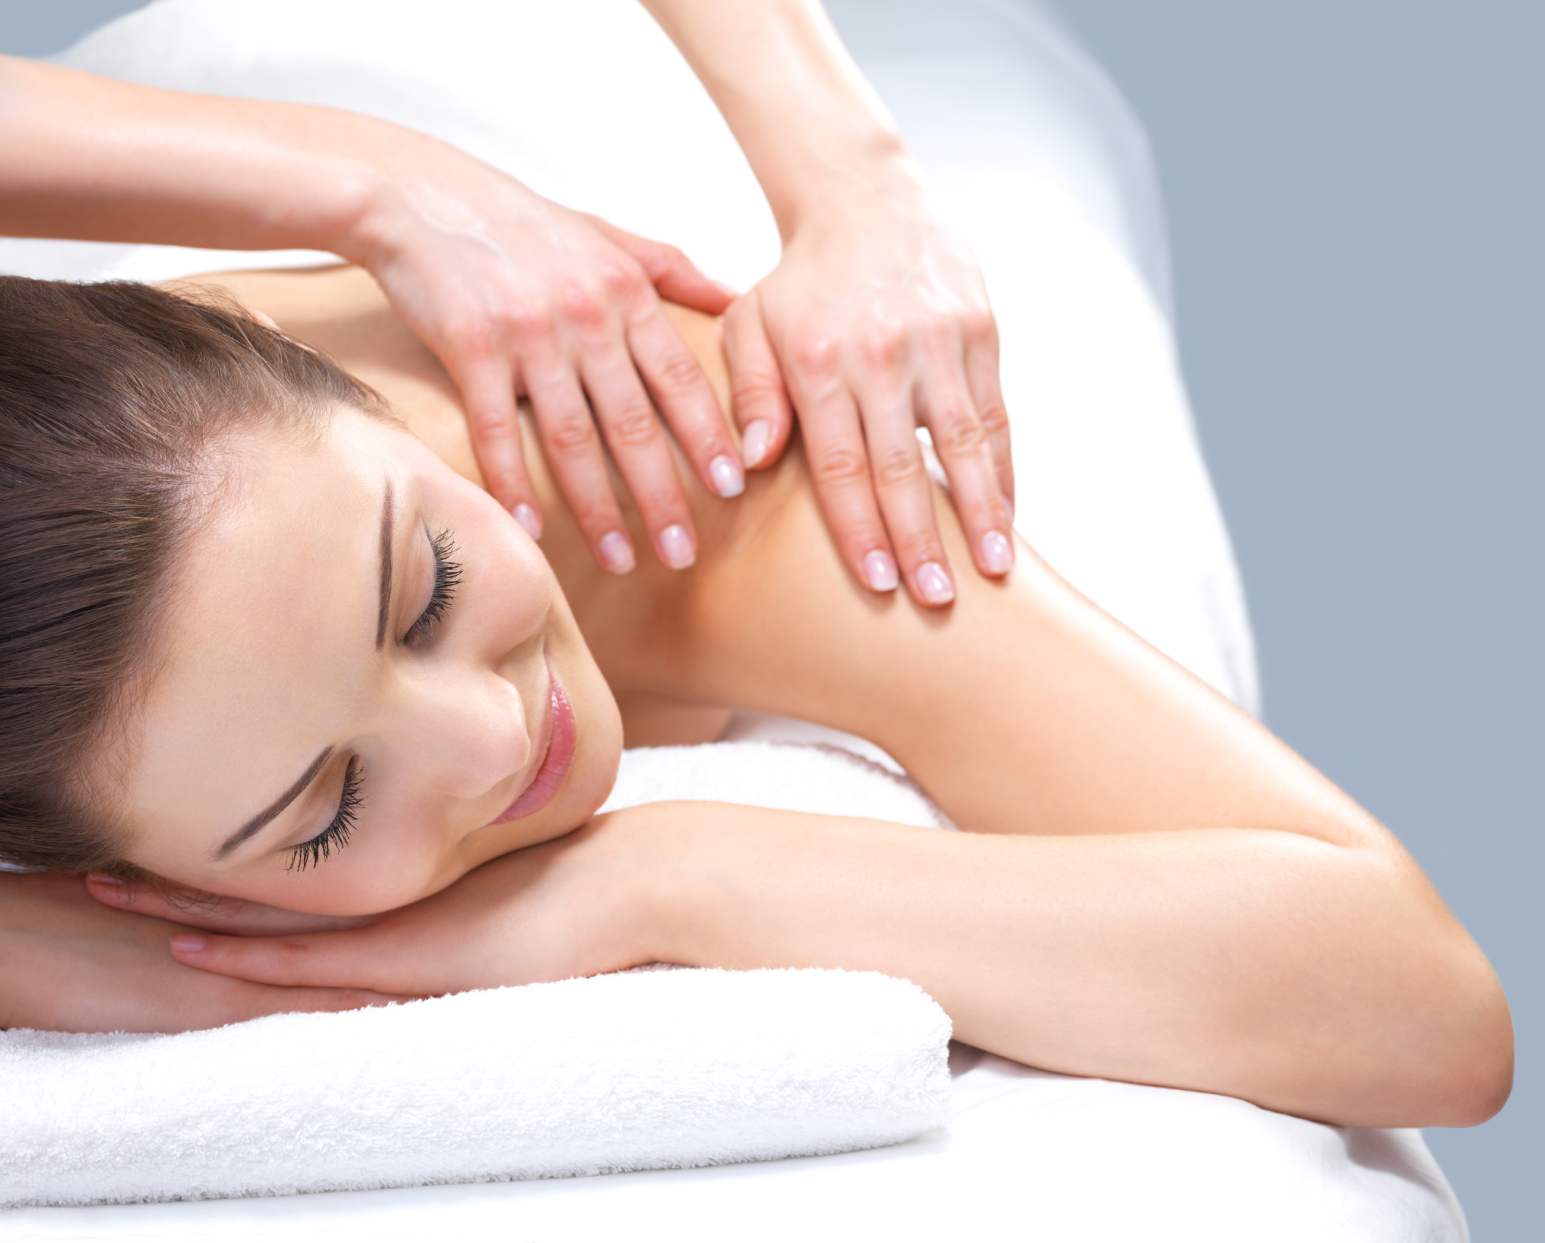 physical therapy st albert edmonton sturgeon valley registered massage therapy